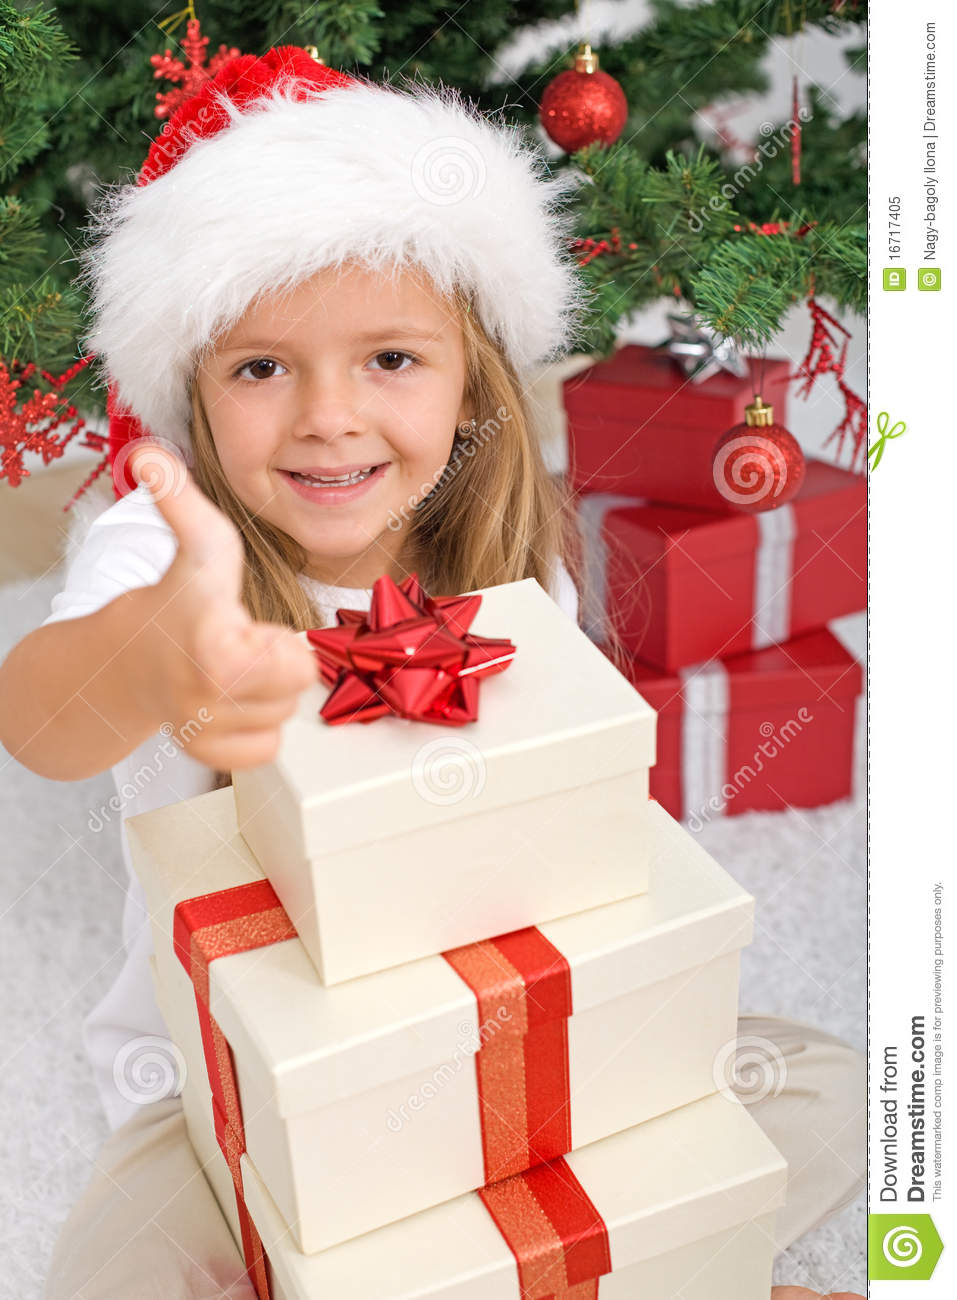 Find and save ideas about Little girl gifts on Pinterest. | See more ideas about DIY gifts little girl, Photos of cute girls and Girl birthday presents. DIY and crafts Christmas Gift Ideas for the Little Girl. Best fun gift ideas for the little girl. Gift guide for the three-year-old girl. Gifts for .